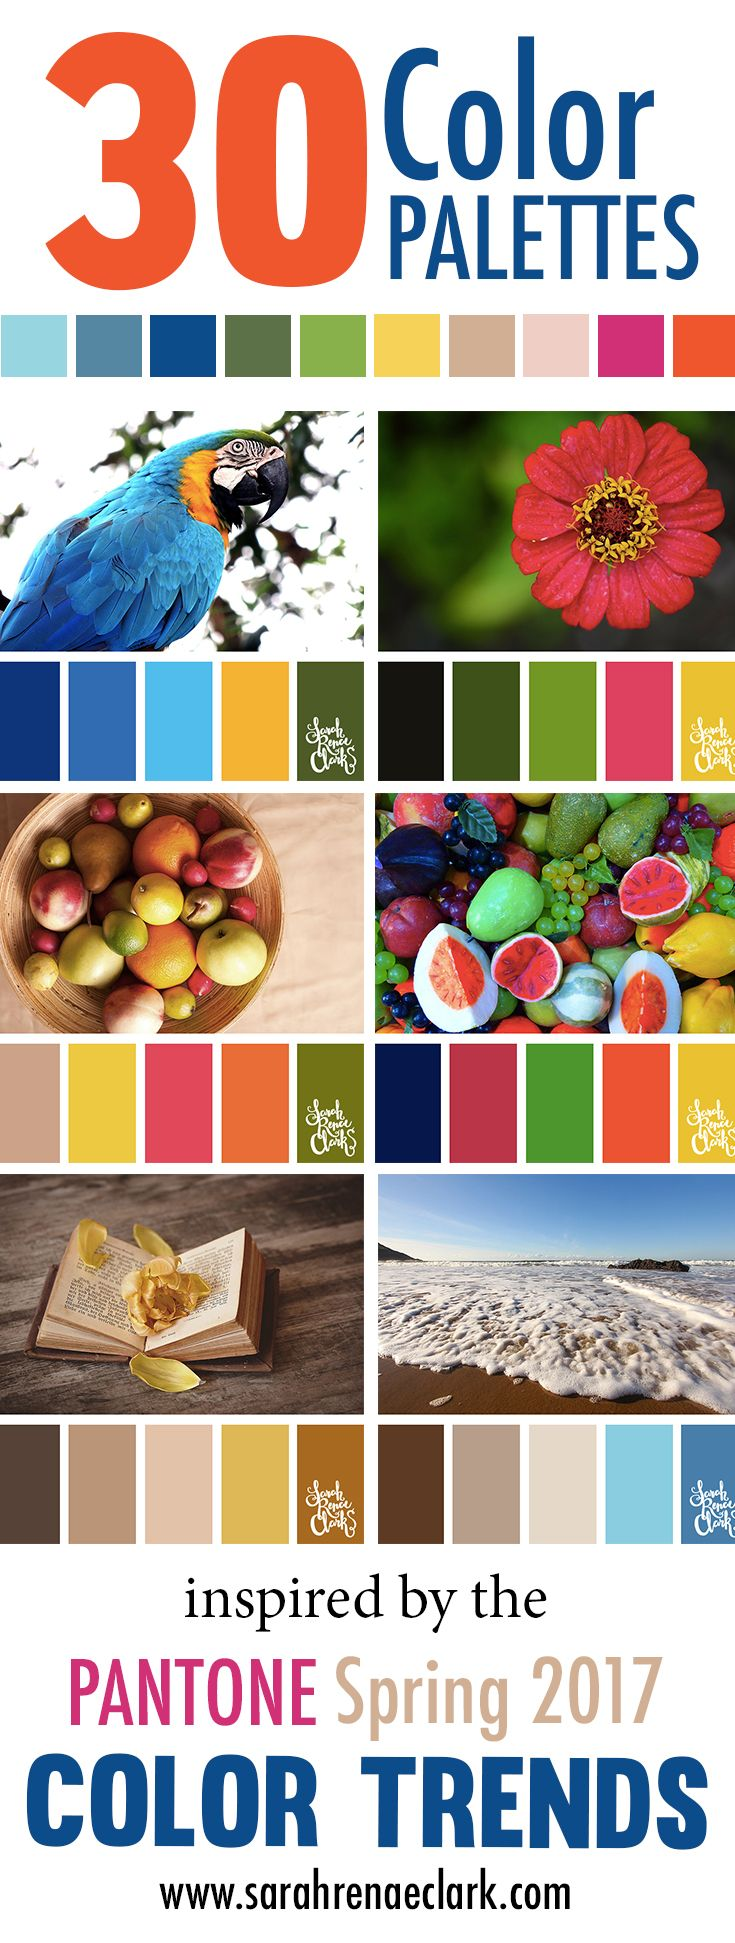 foto de 30 Color Palettes Inspired by the Pantone Spring 2017